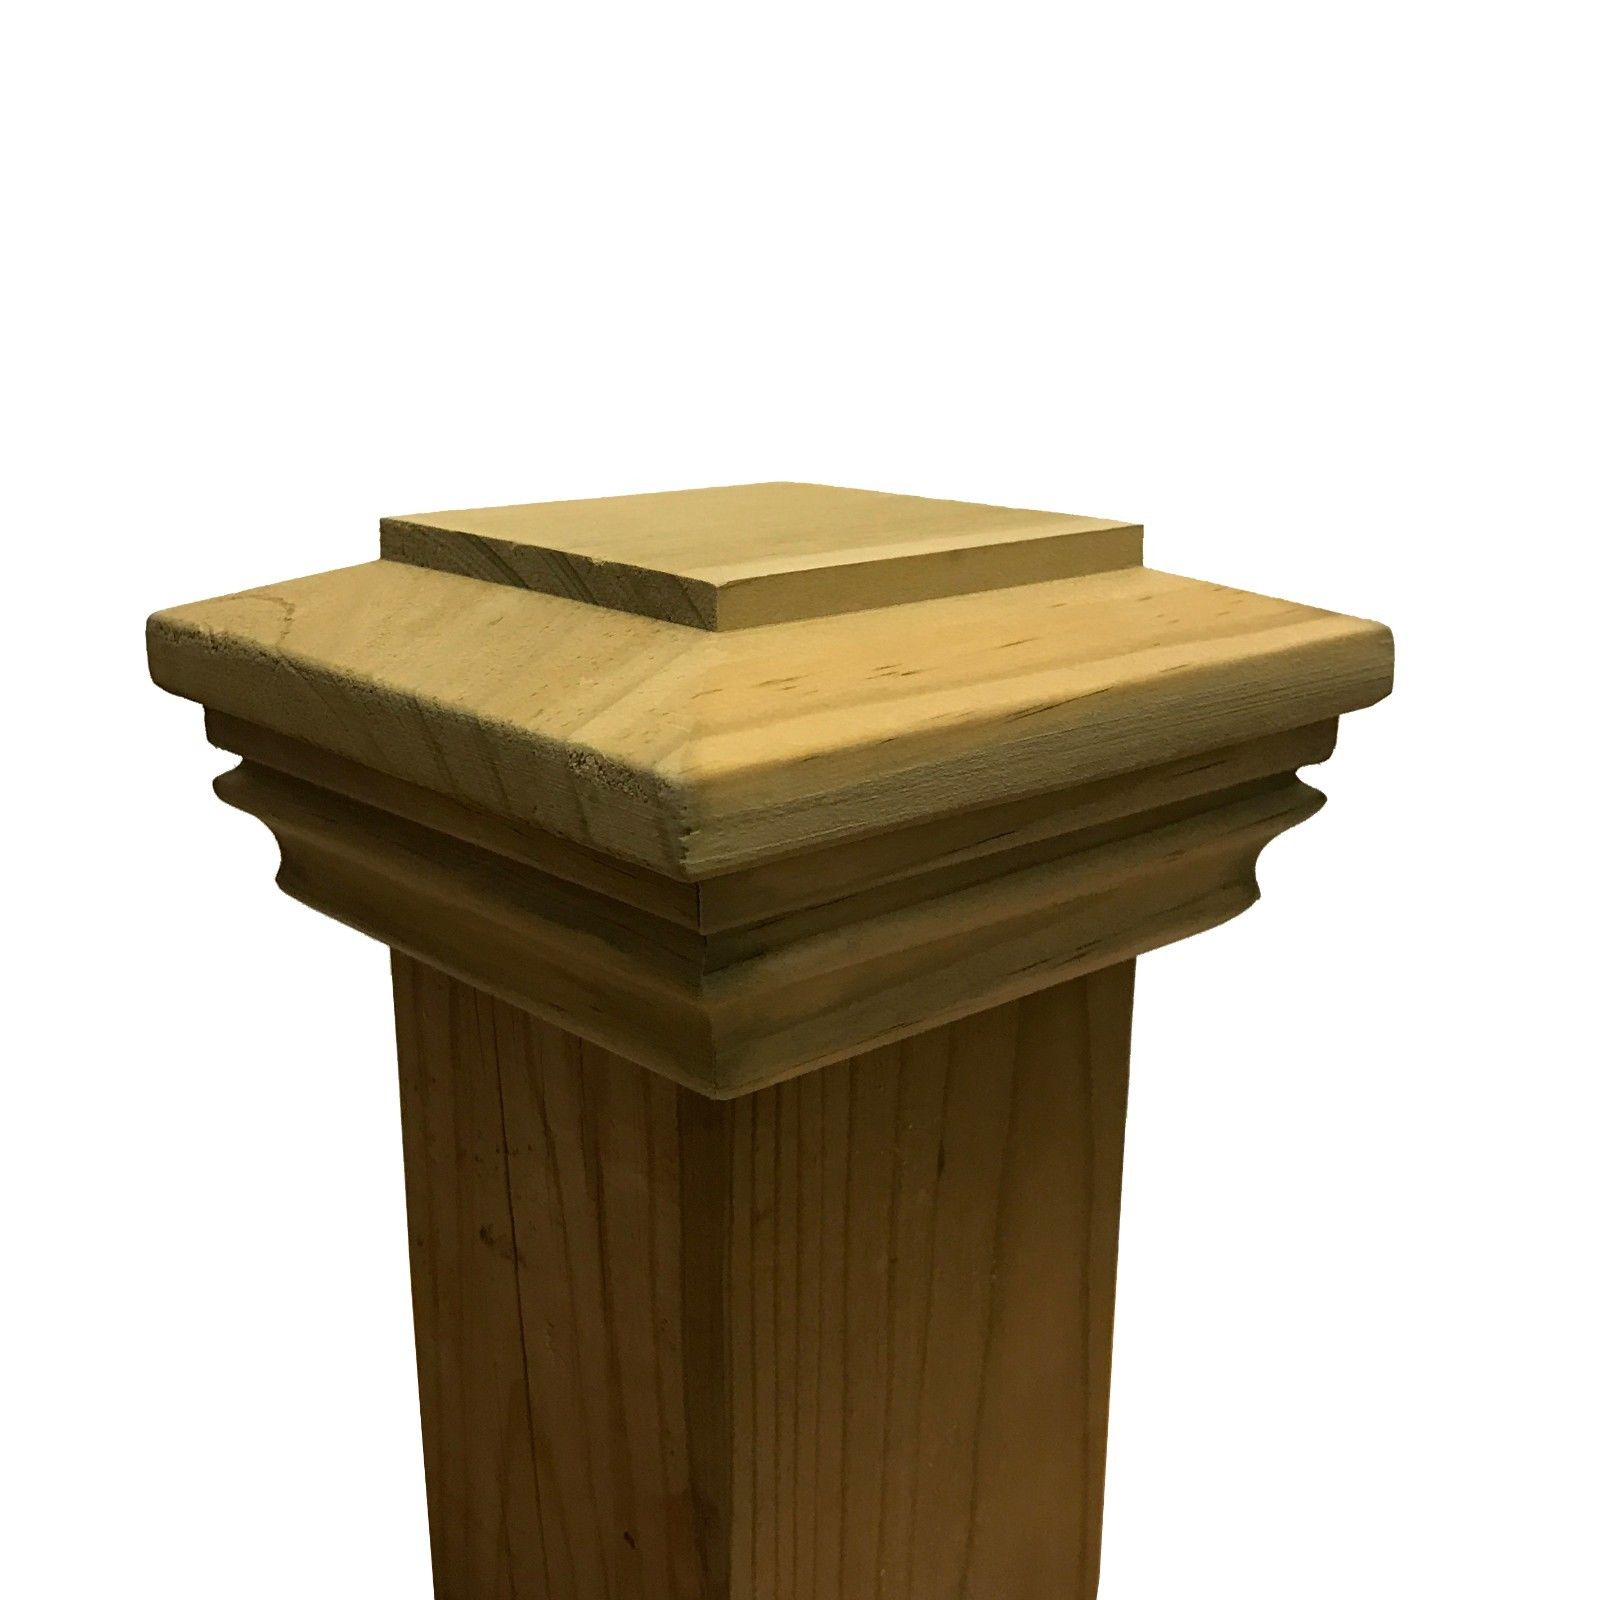 Pressure Treated Plateau Wood Post Cap for 3.5 x 3.5 Fence and Deck Posts